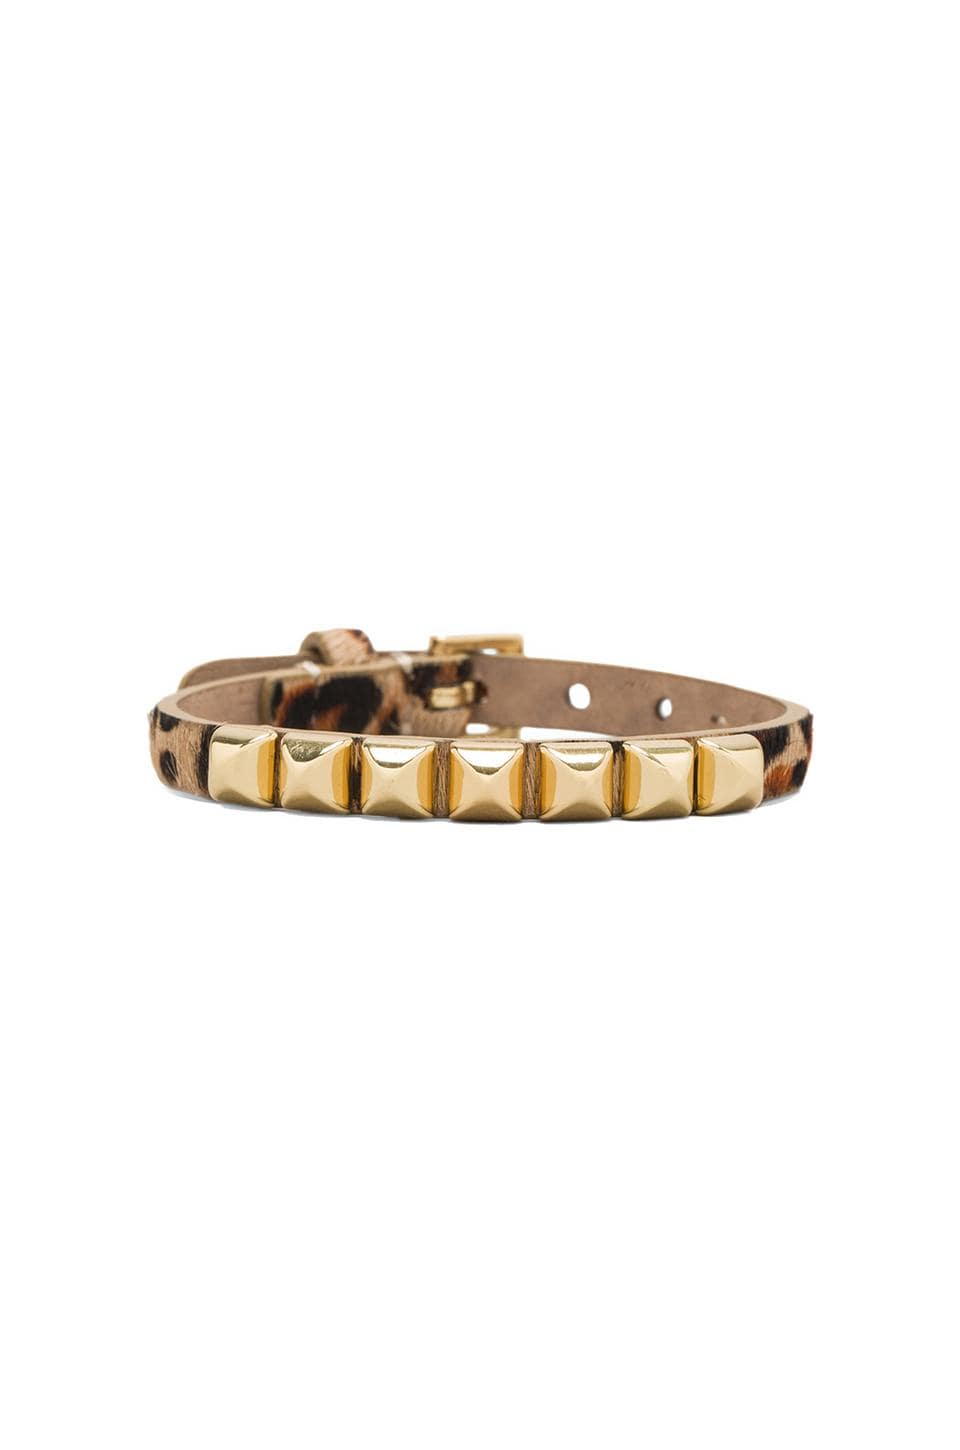 Juicy Couture Skinny Leather Pyramid Bracelet in Leopard